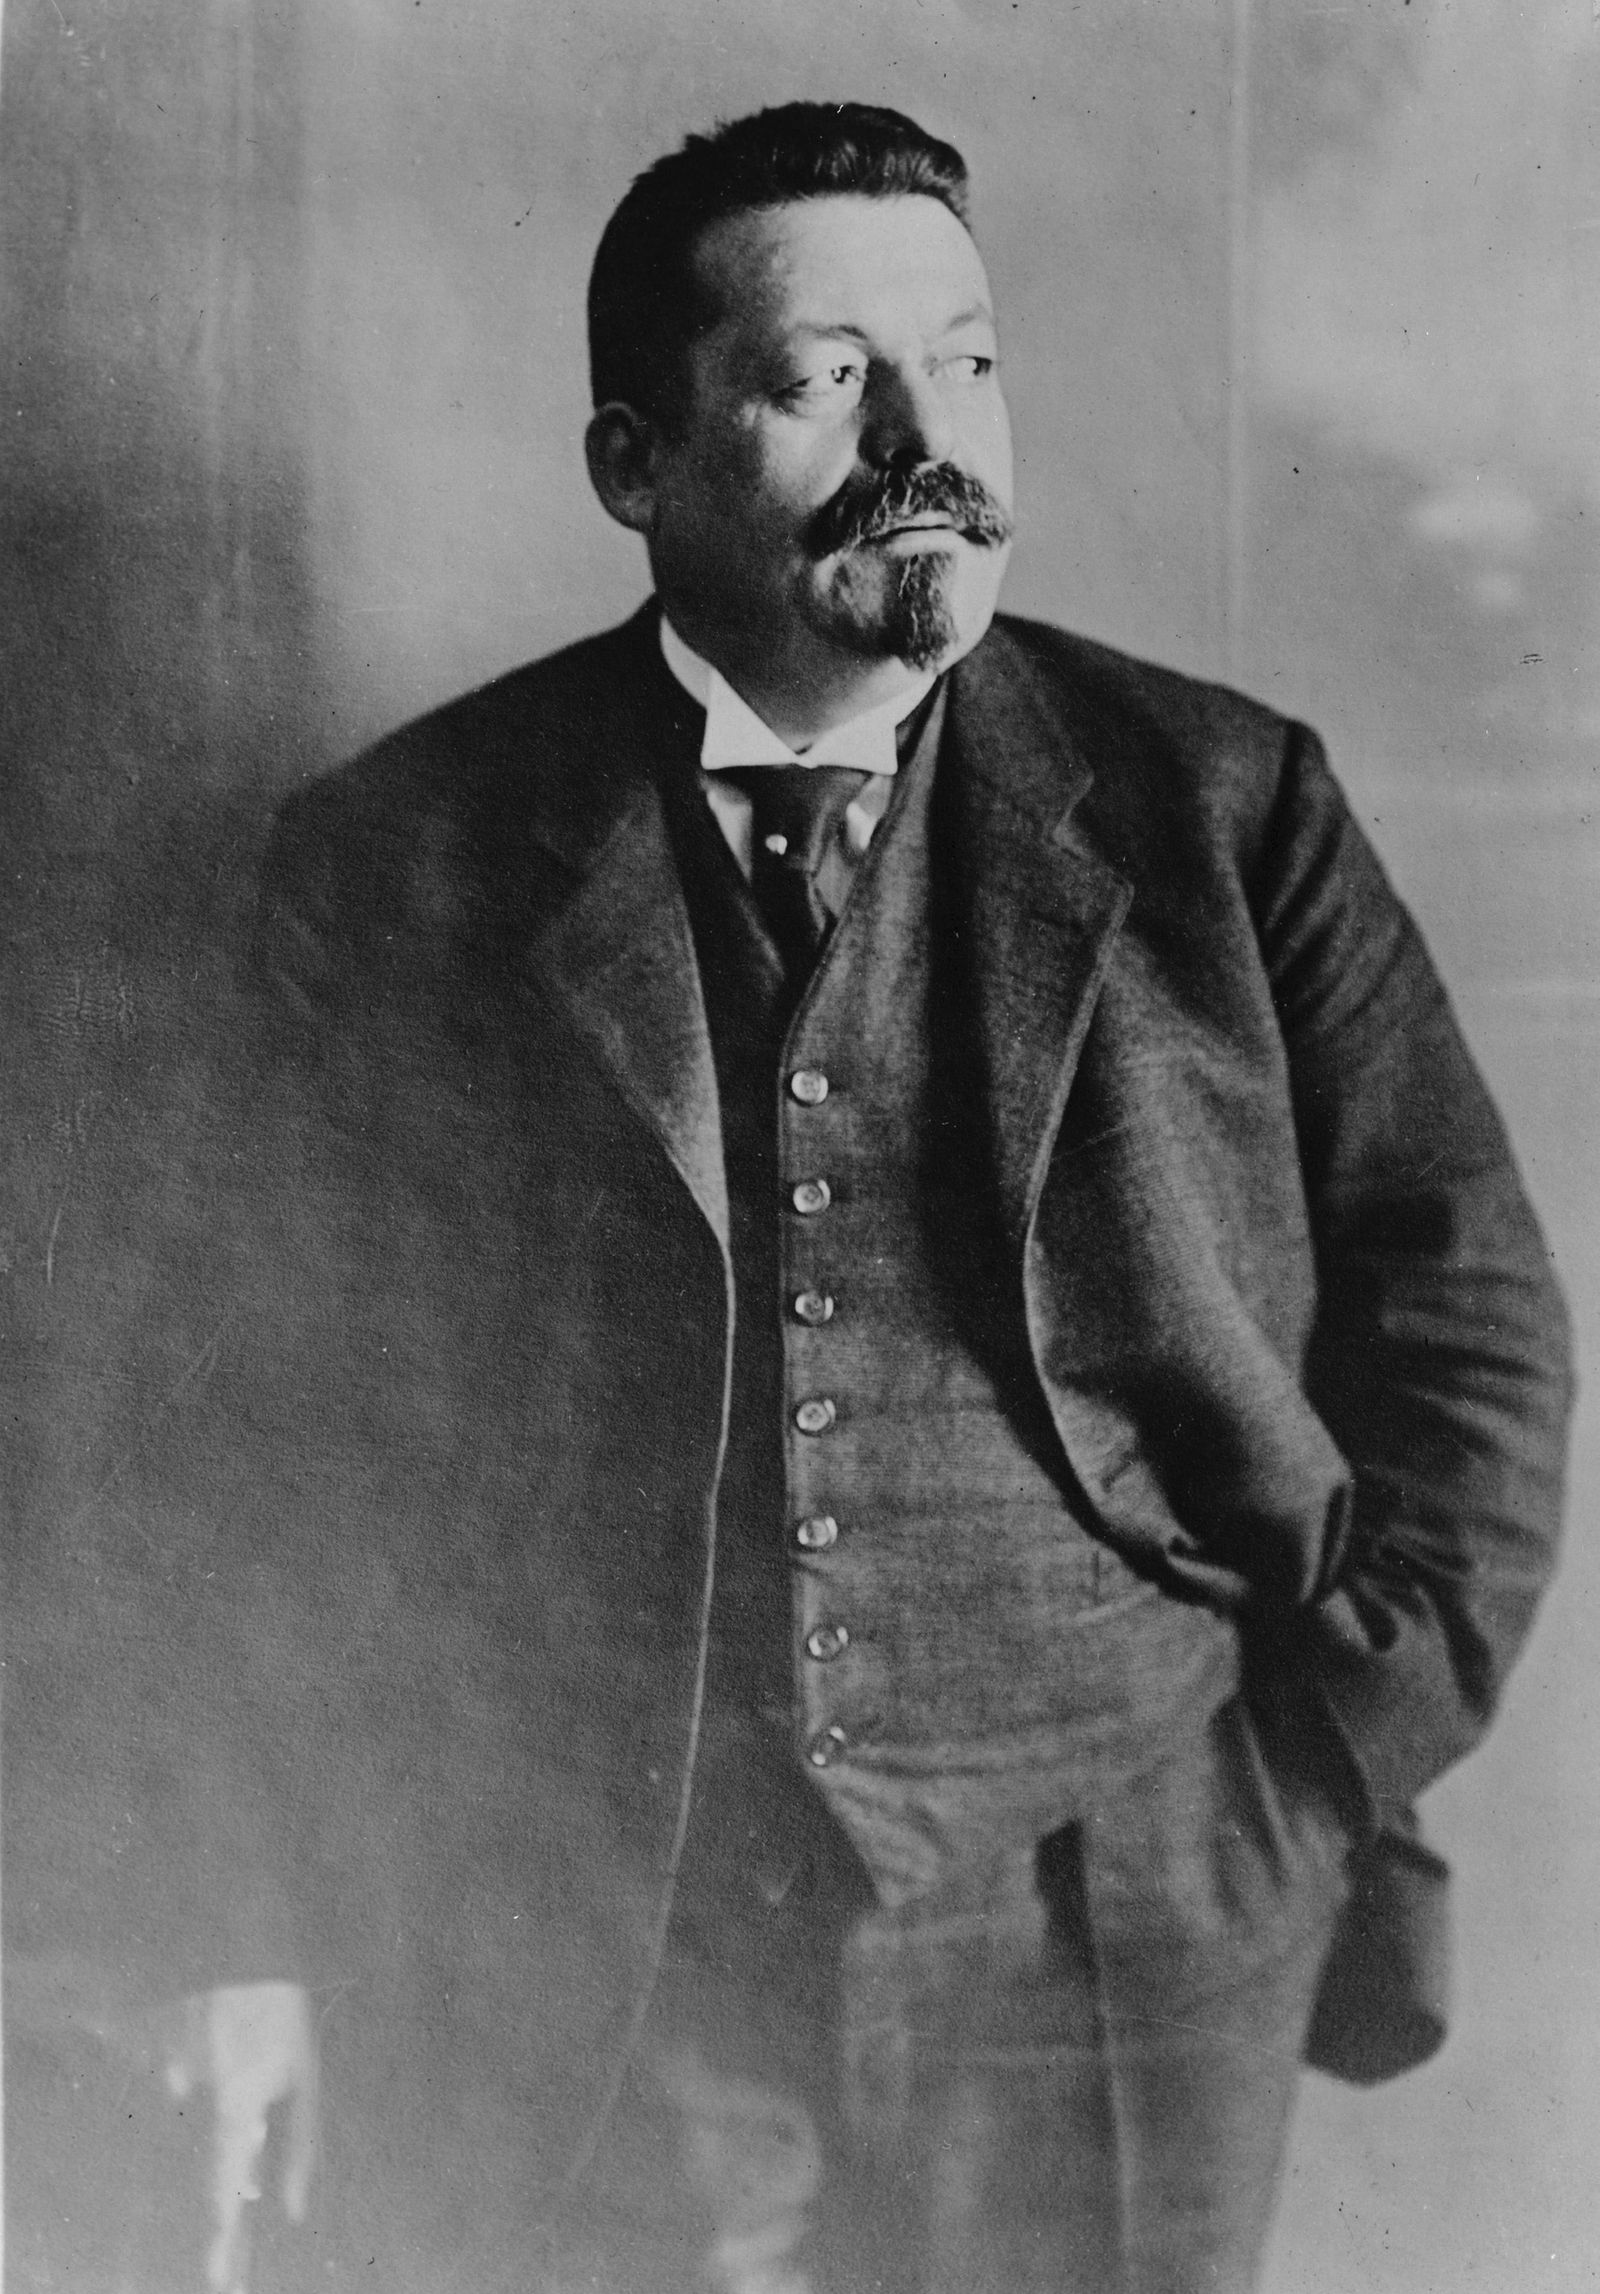 Friedrich Ebert (1871 1925) German politician (SPD). Served as Chancellor of Germany and its first President during the